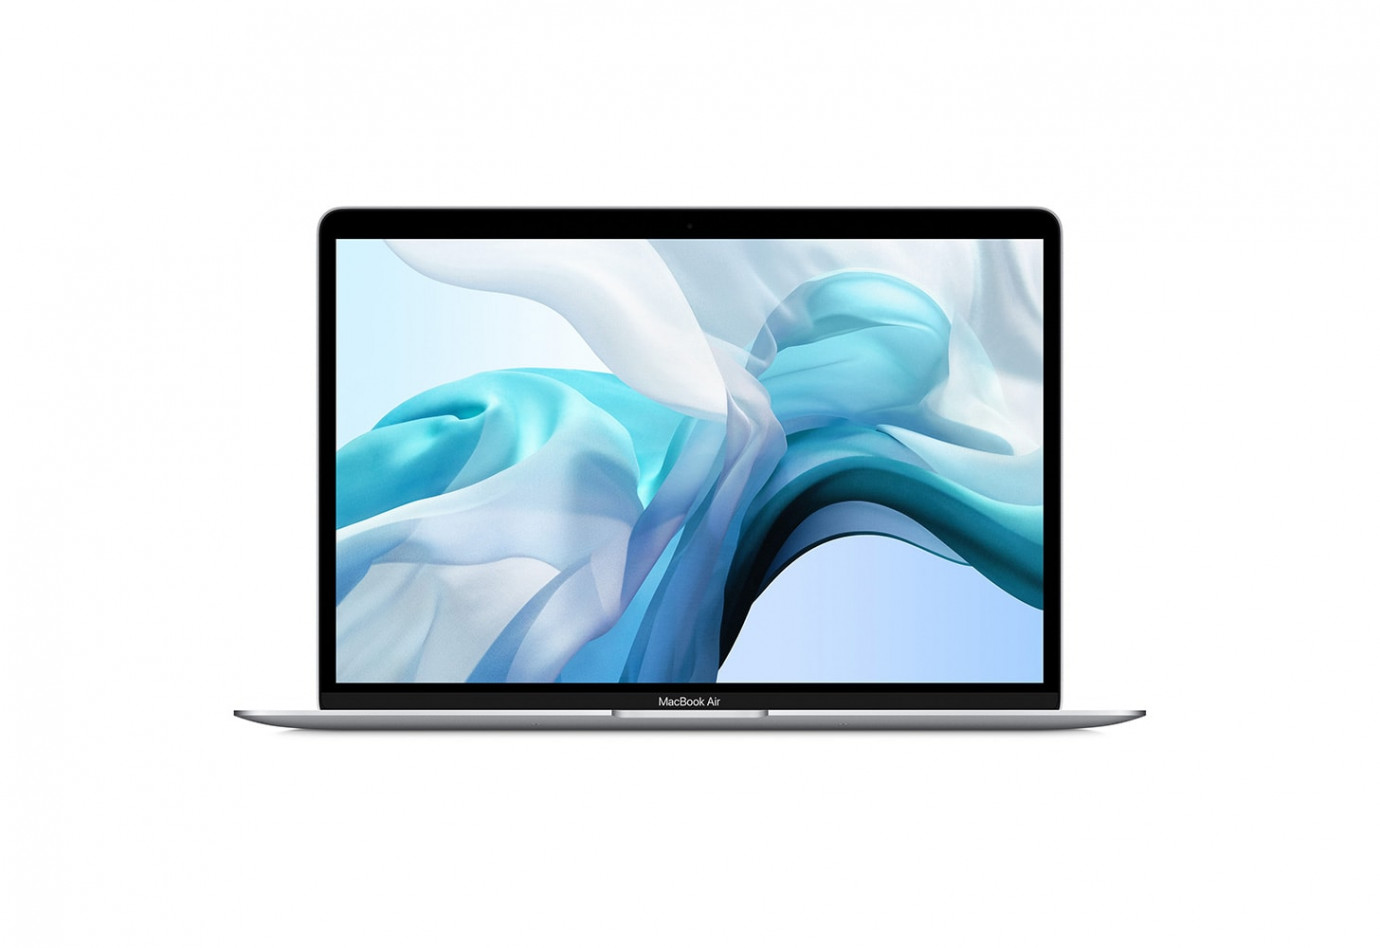 macbookair-silver-1.jpg